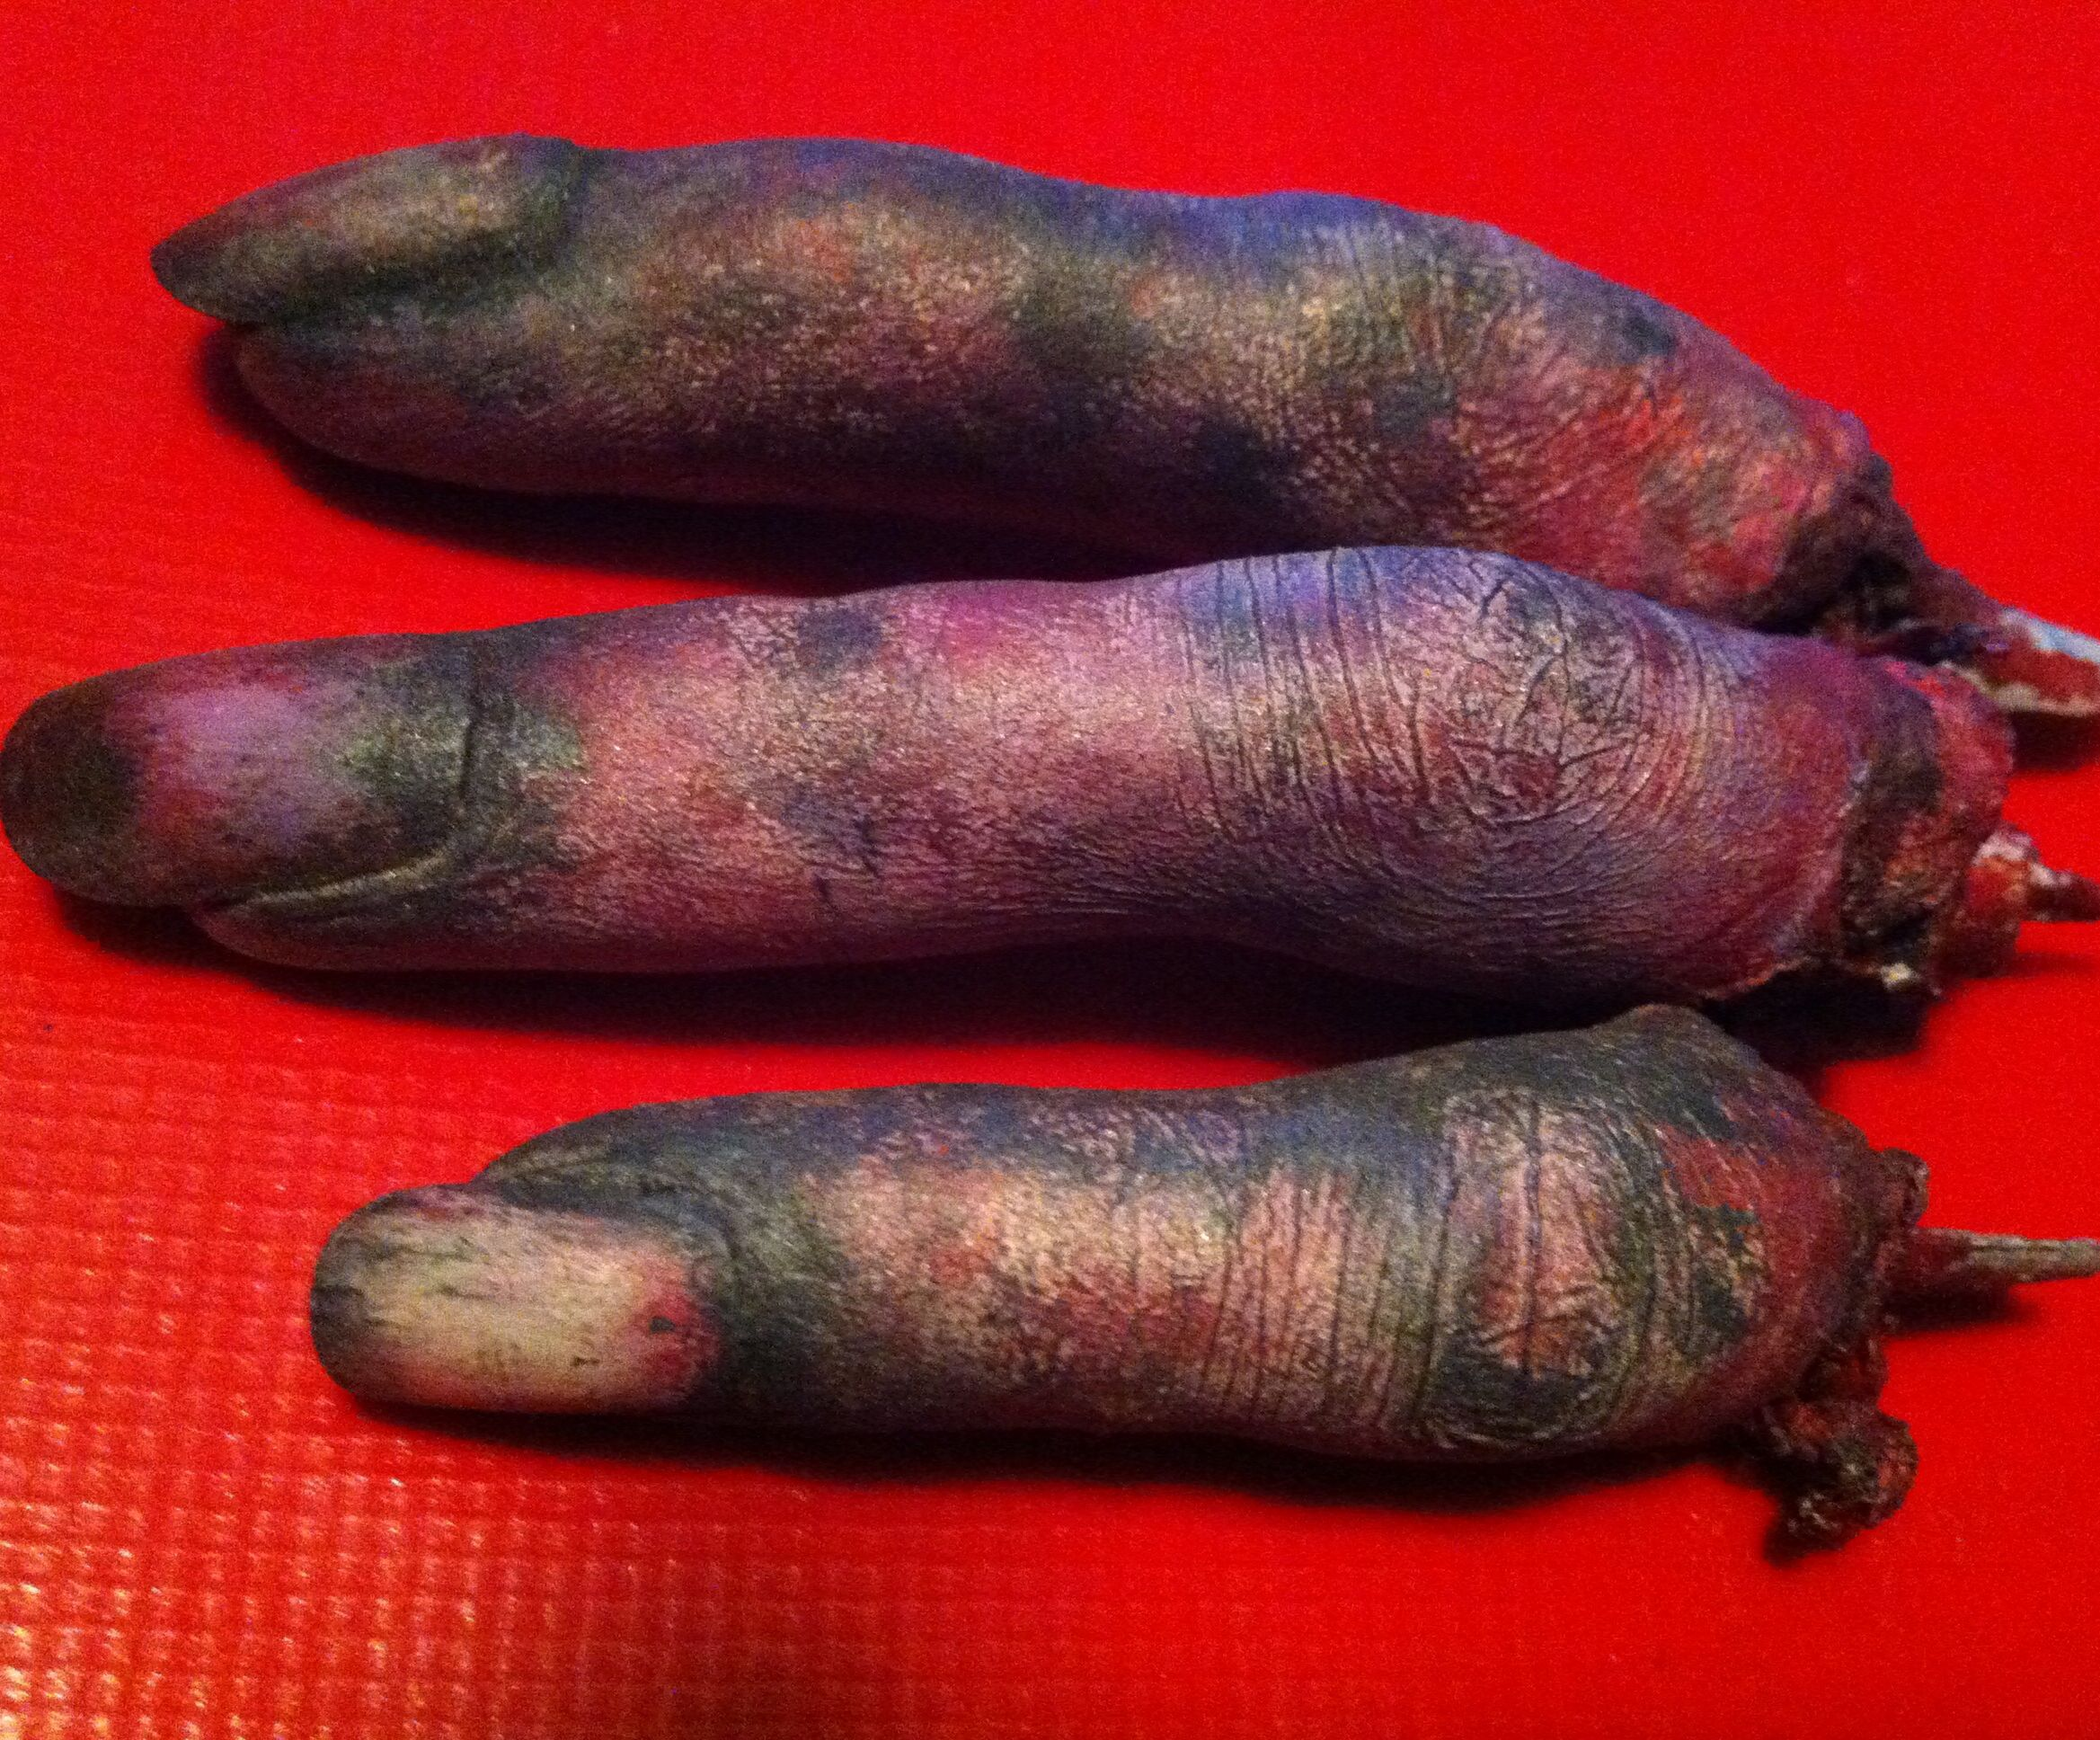 Simple severed fingers